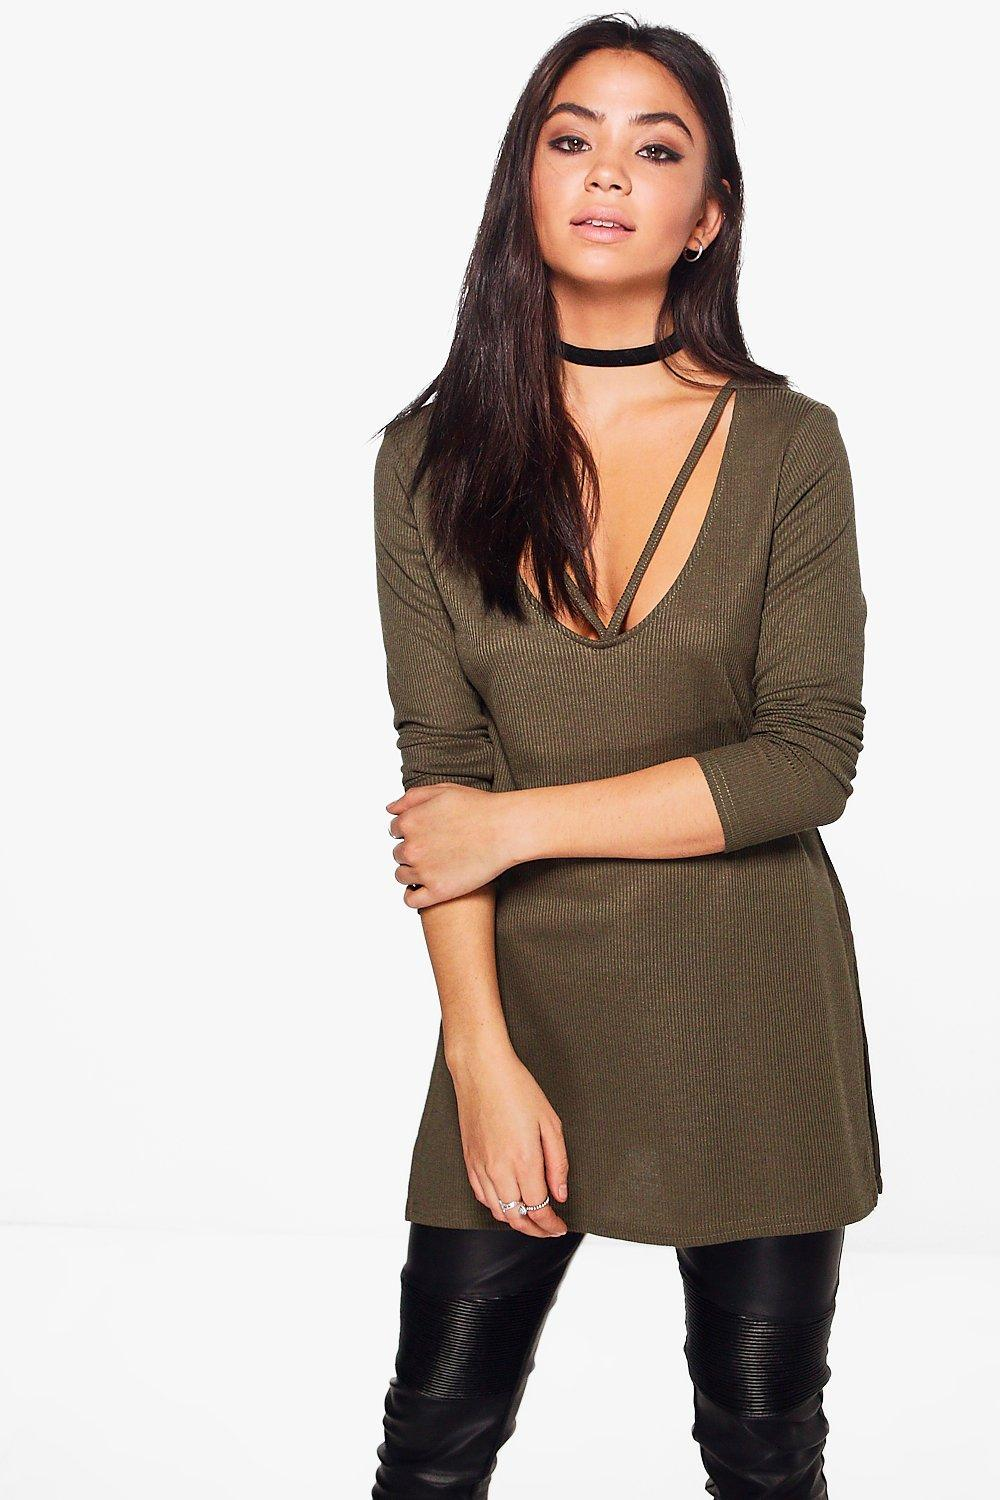 V-Neck Strap Detail Rib Knit Jumper - khaki